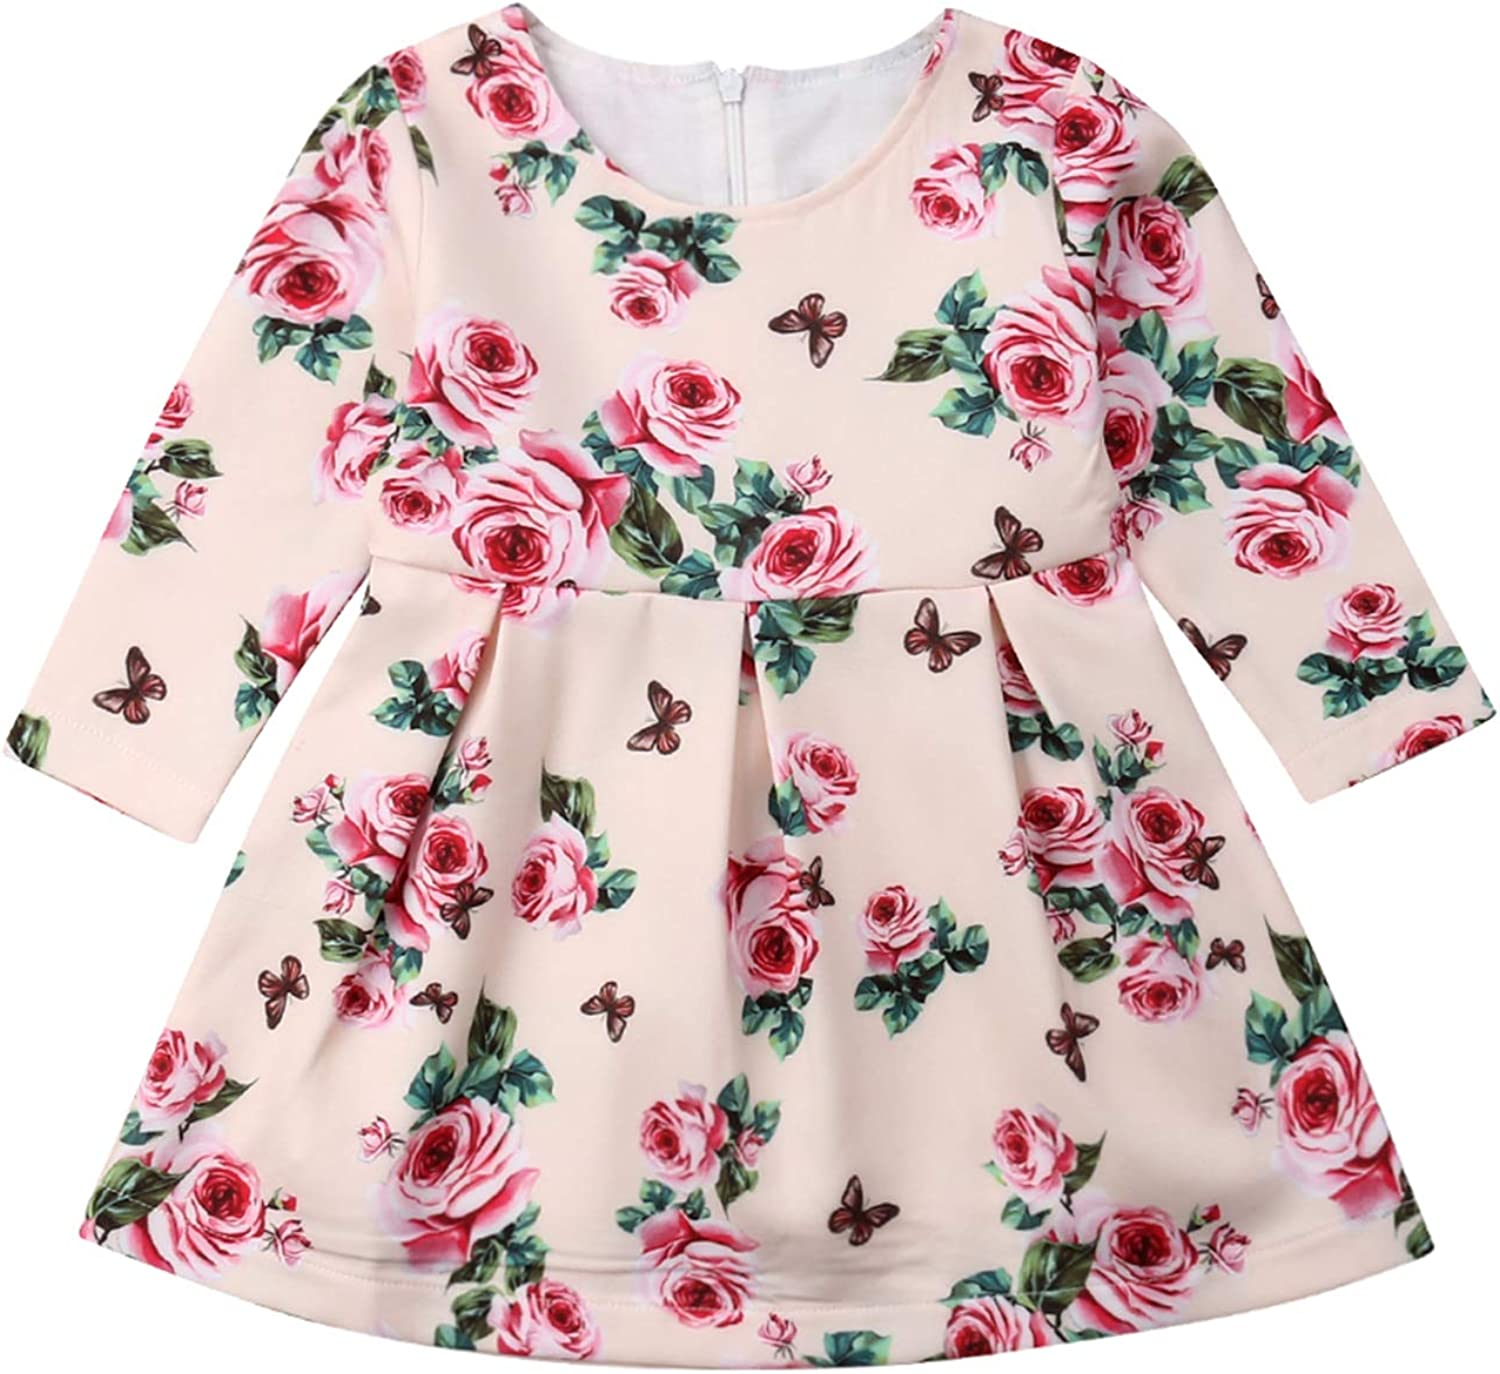 Toddler Baby Girl Long Sleeve Rose Floral Party Dress Little Girl Holiday Casual Dresses